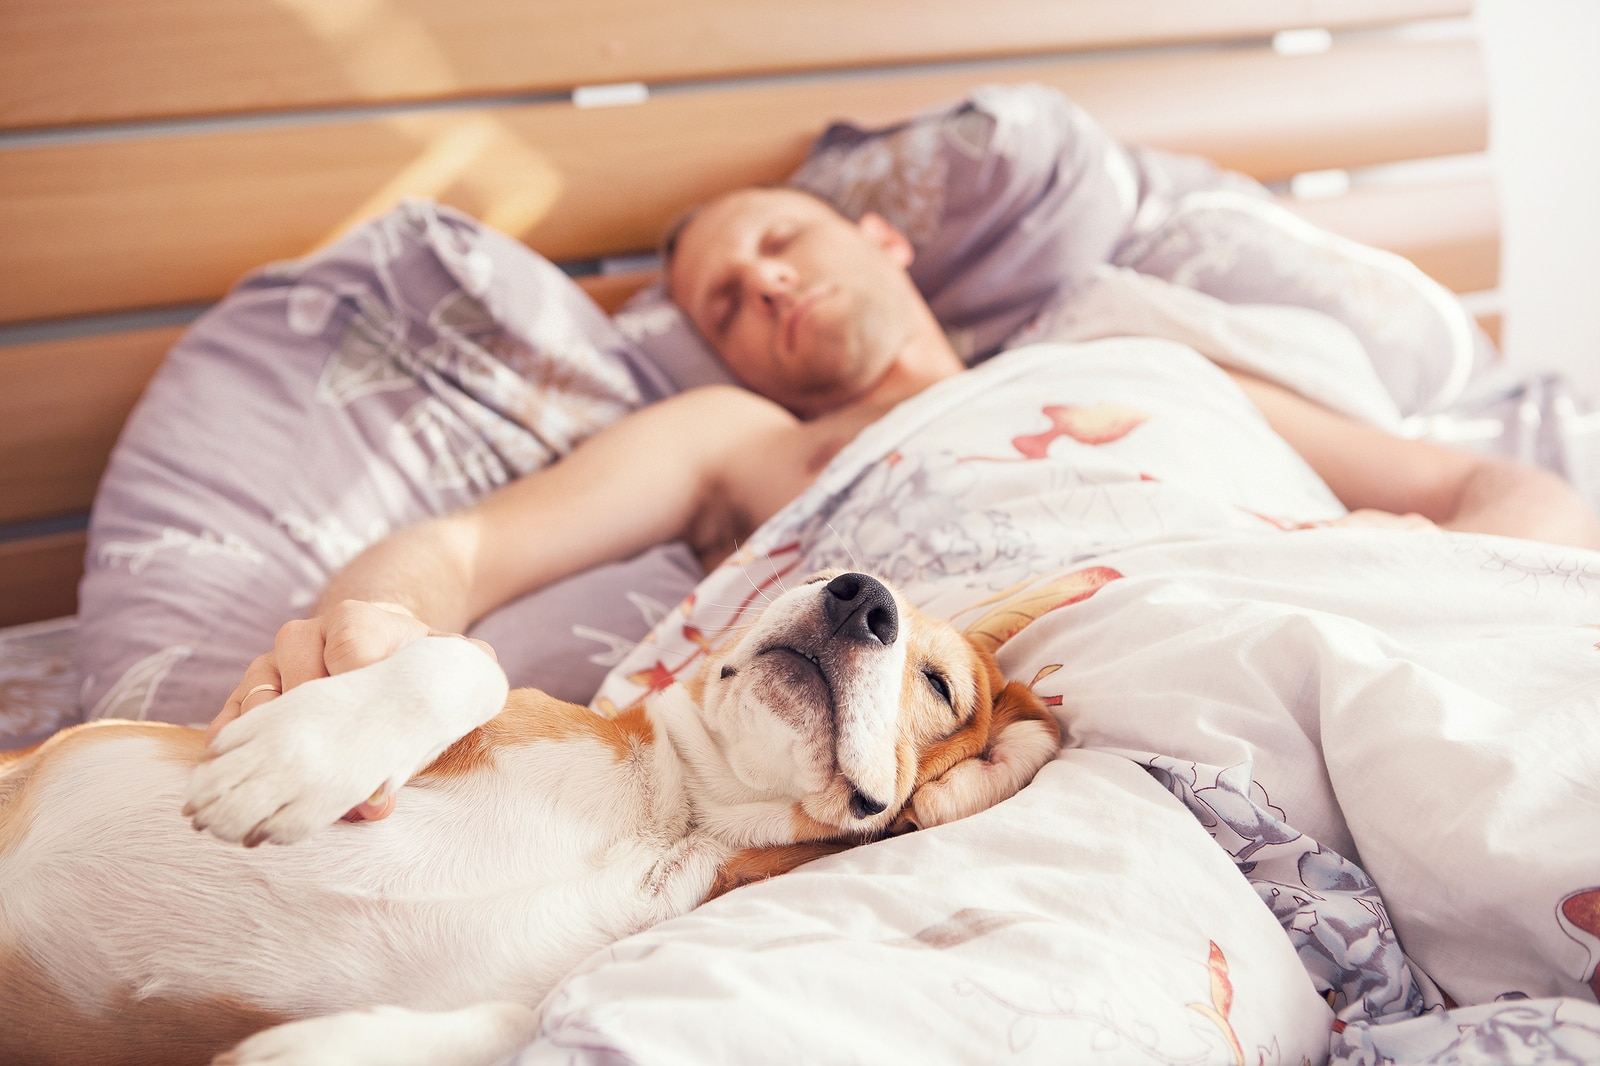 Dog lying on back in the bed while man sleeps next to him